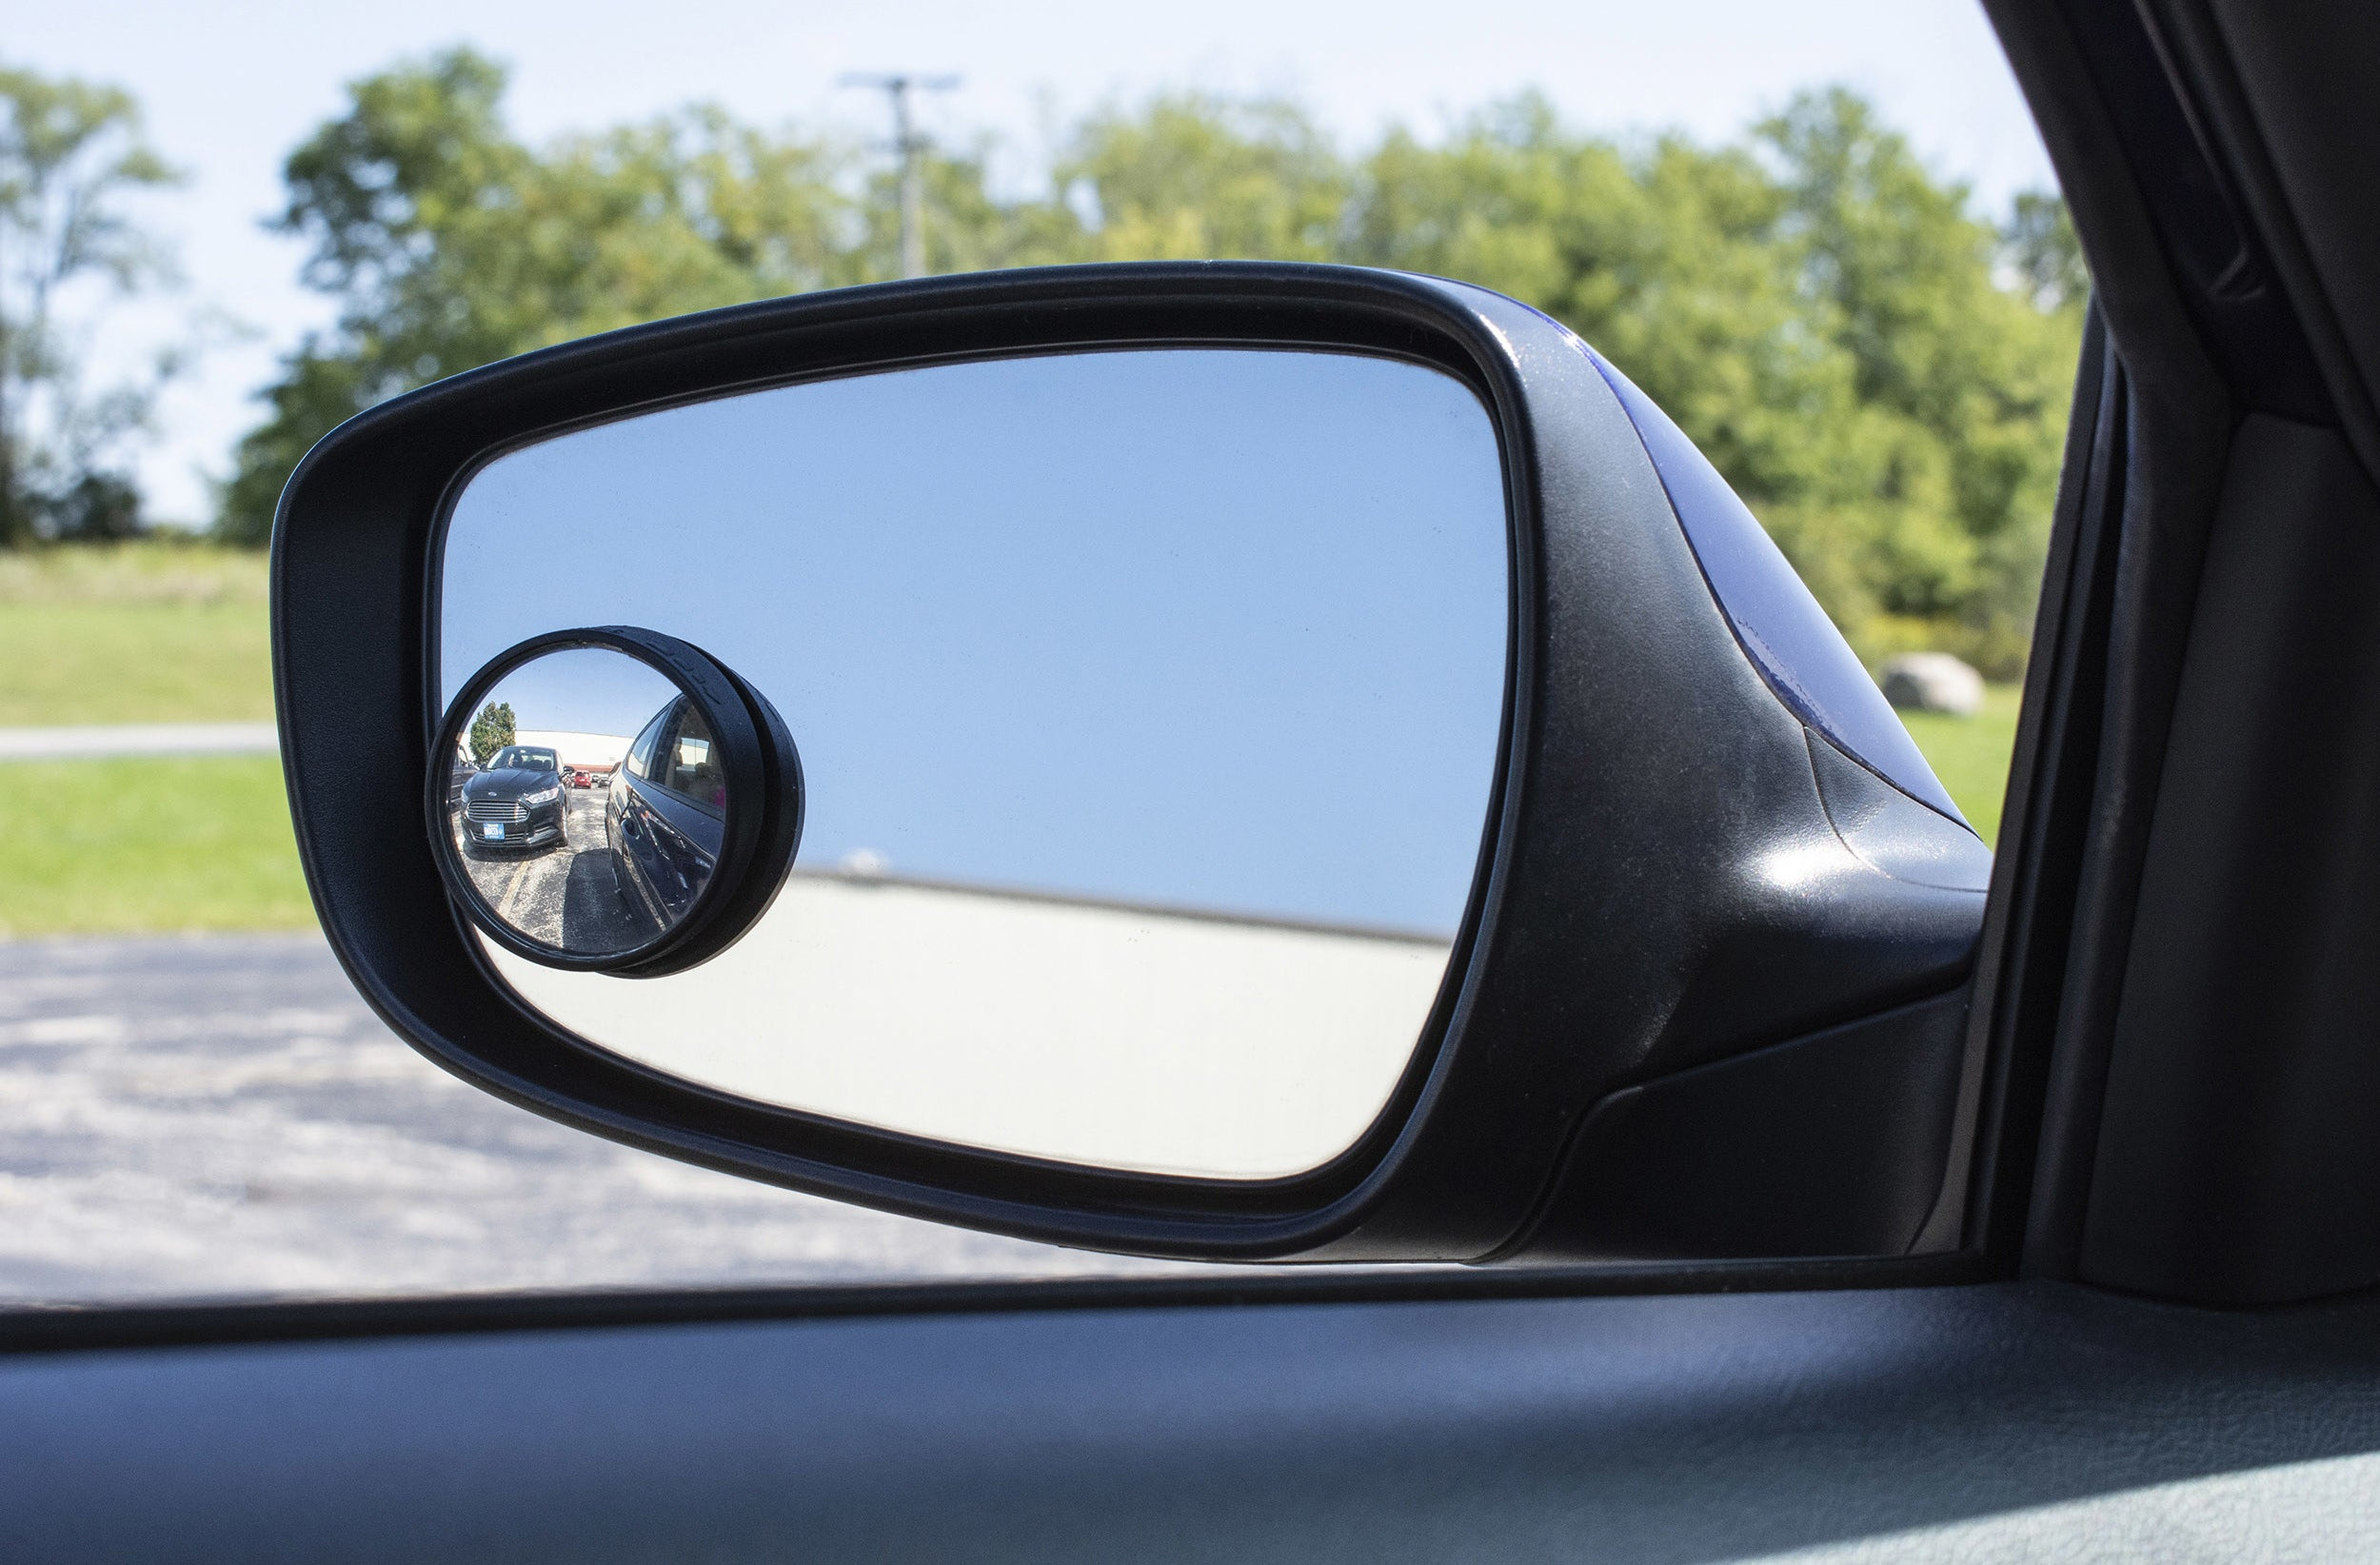 blind spot mirror on a side mirror showing a car in the blind spot